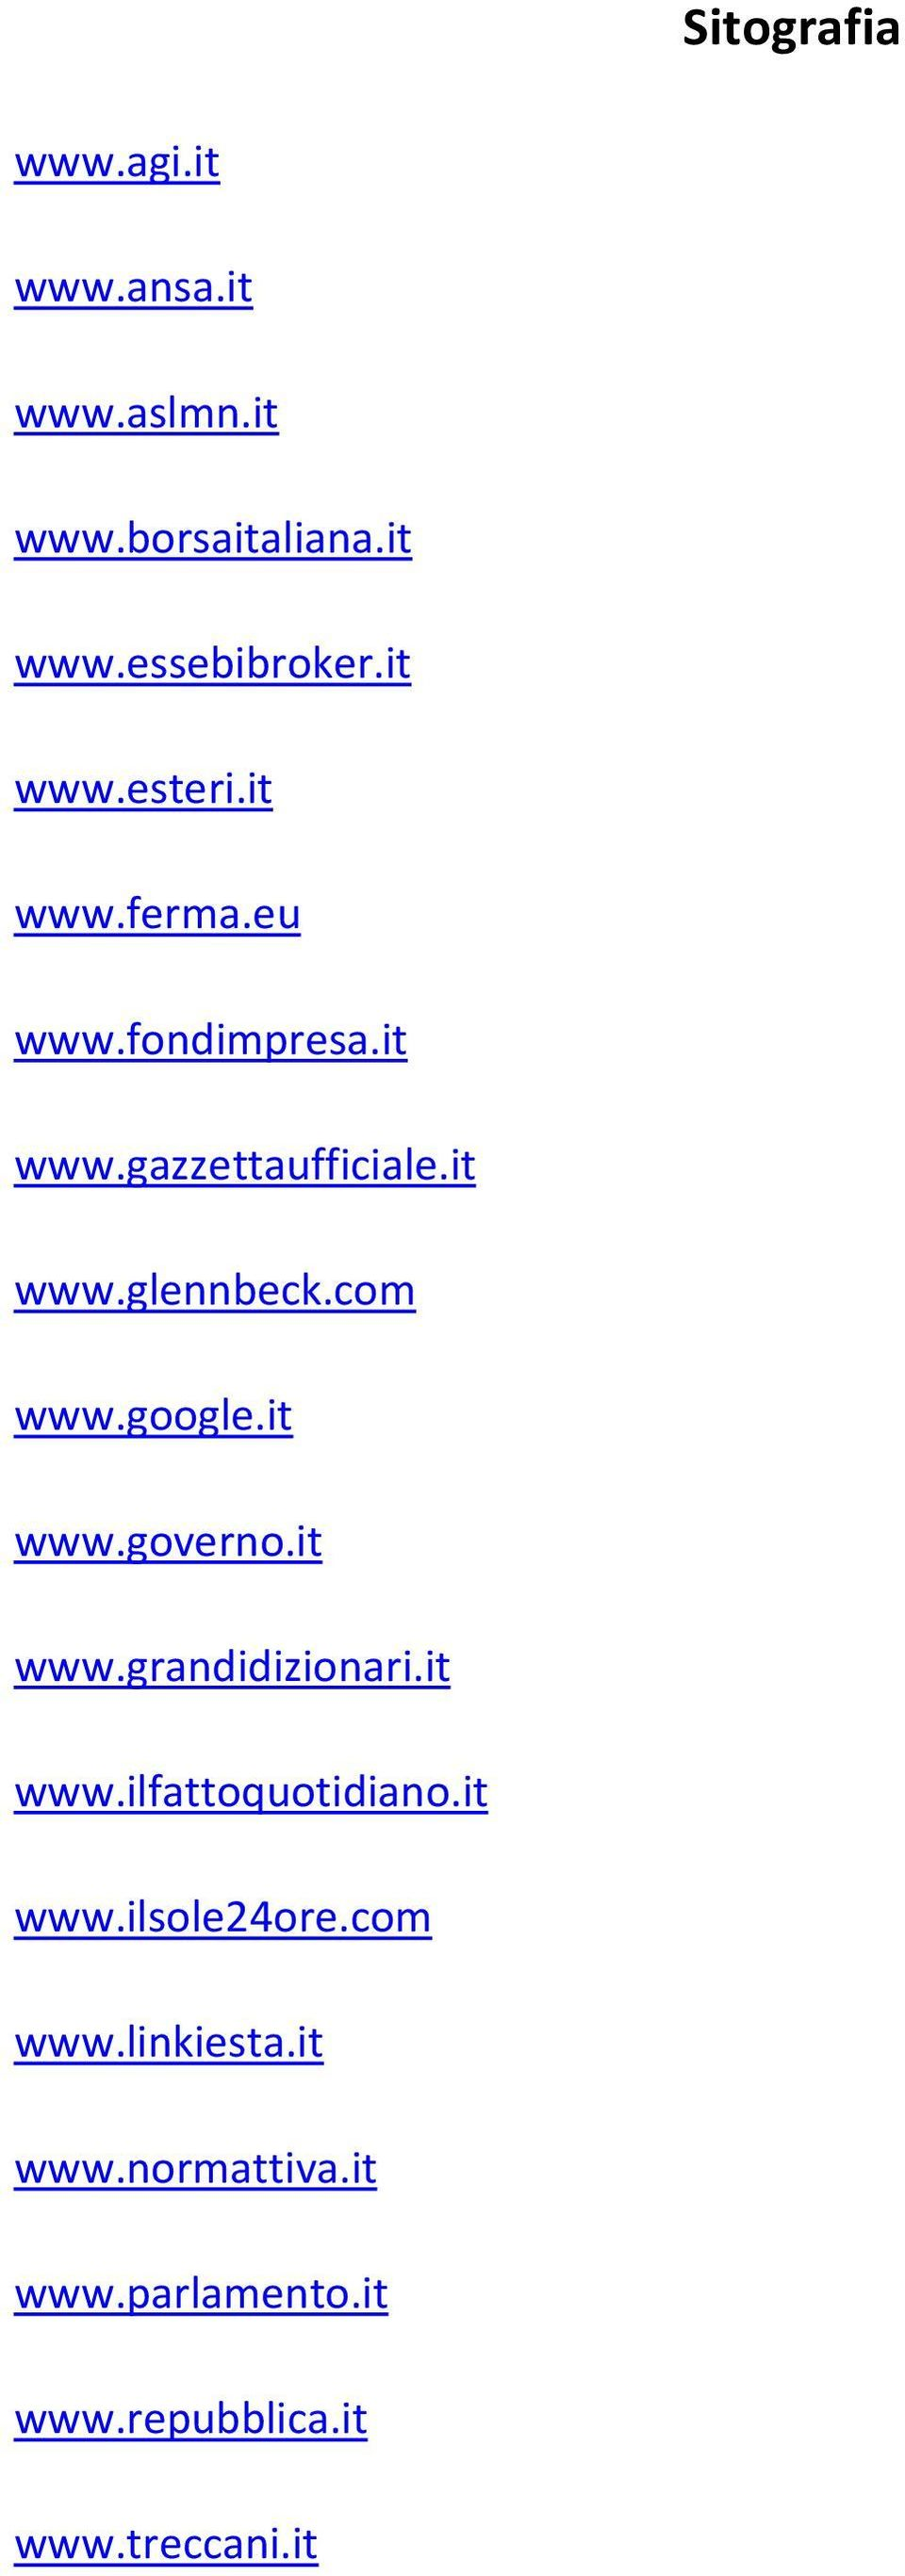 com www.google.it www.governo.it www.grandidizionari.it www.ilfattoquotidiano.it www.ilsole24ore.